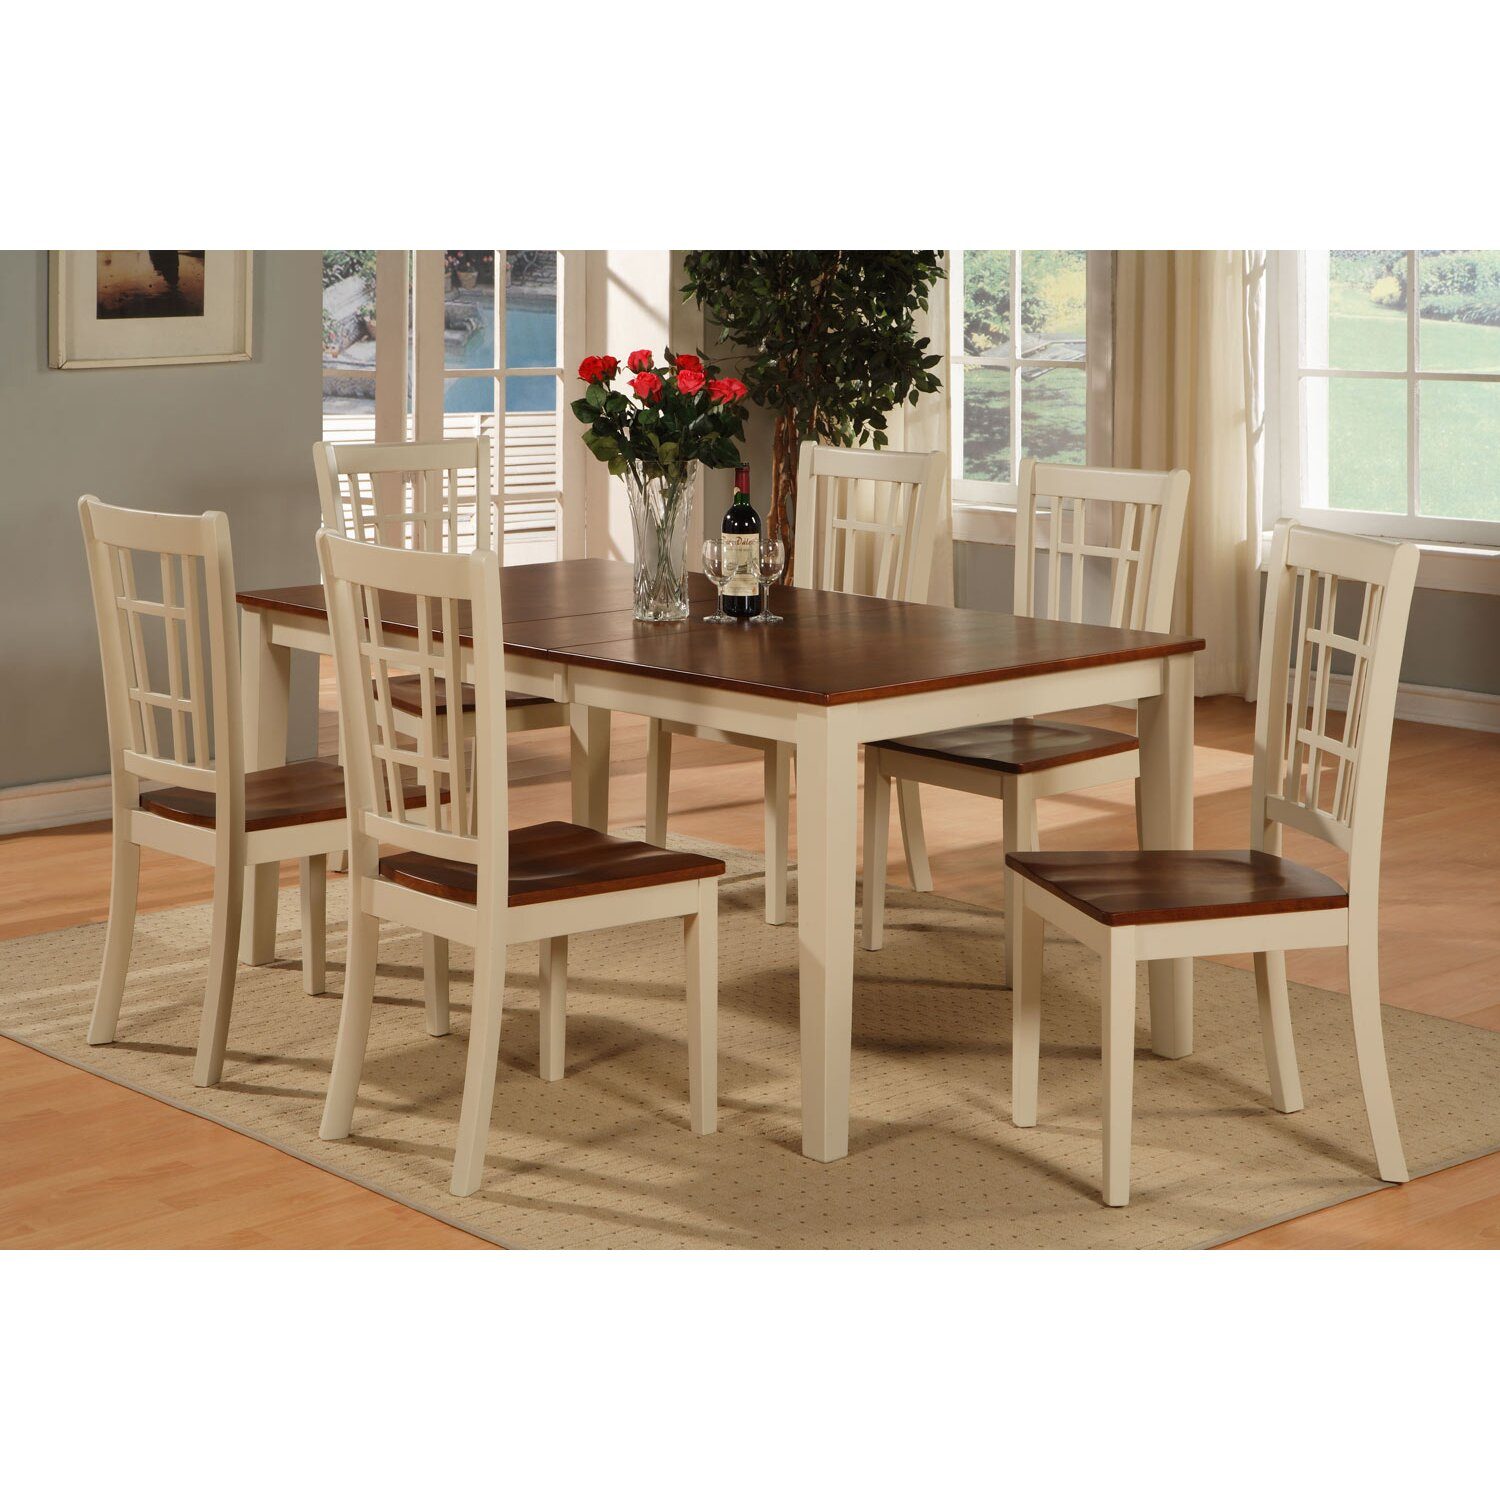 East west nicoli 7 piece dining set reviews wayfair for 7 piece dining set